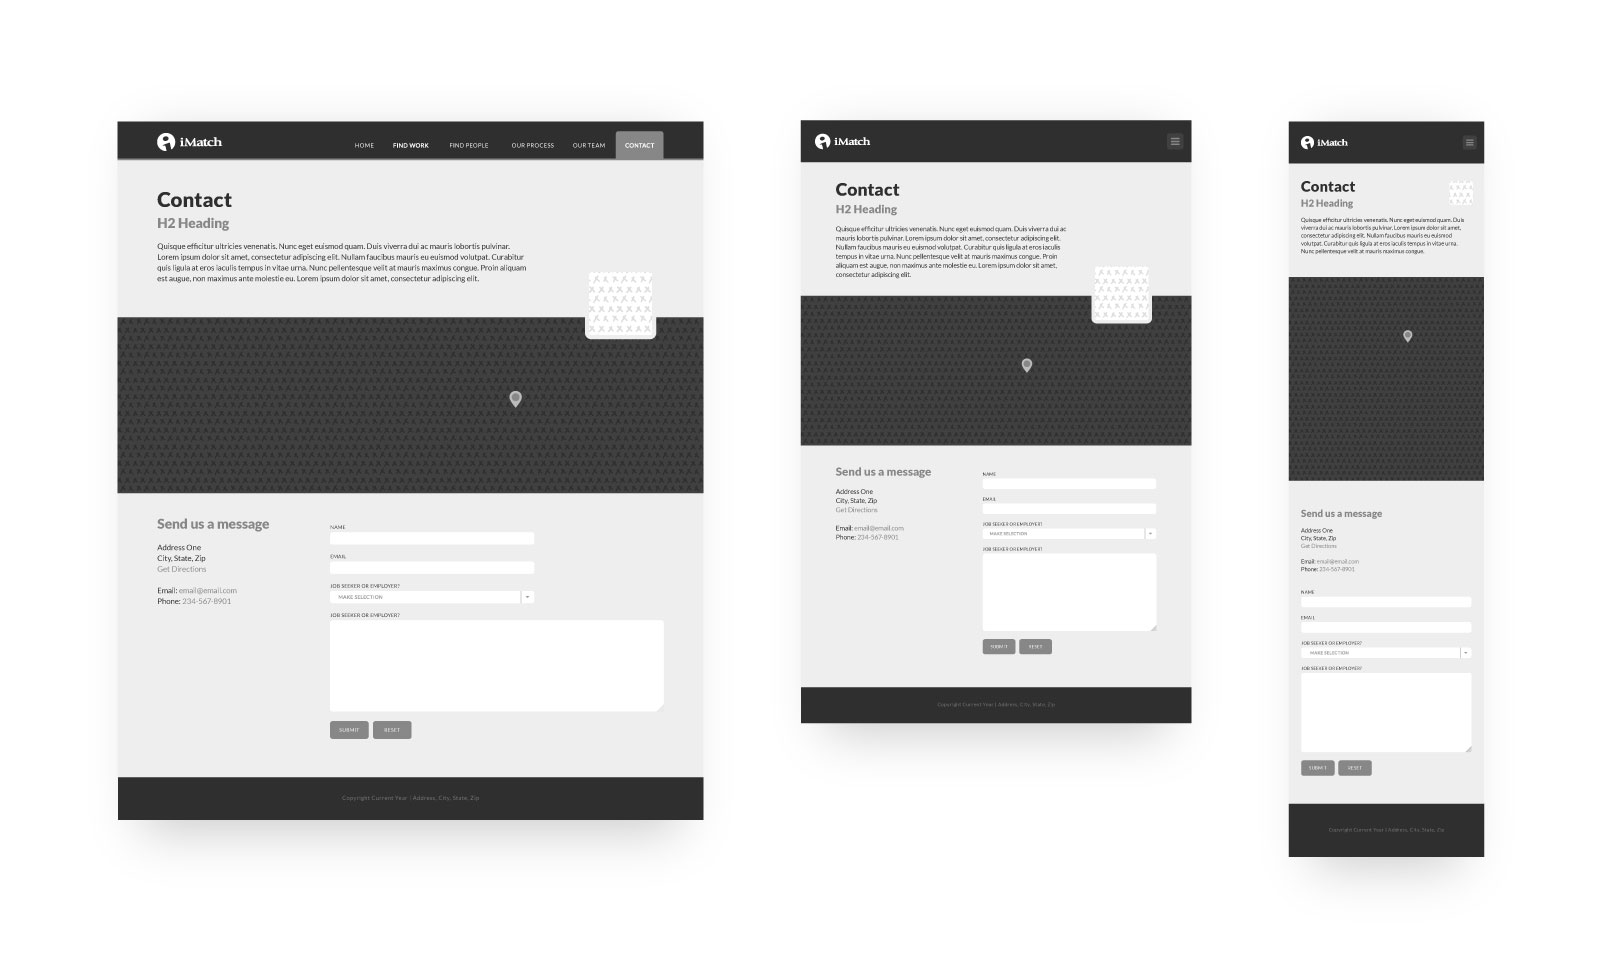 imatch contact wireframe